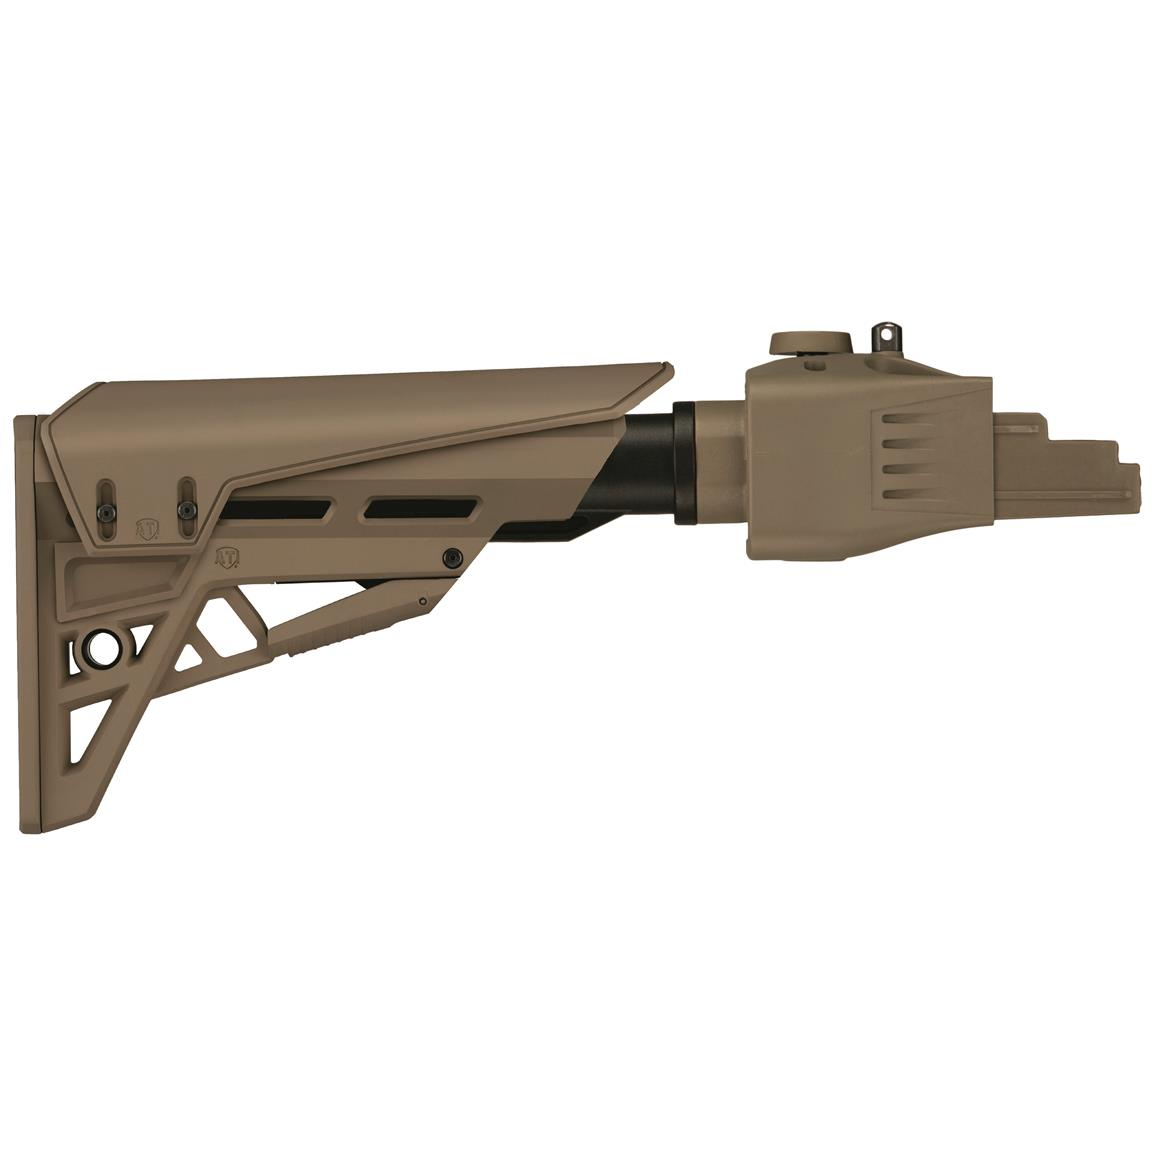 ATI TactLite StrikeForce AK-47 Package with Recoil System, Flat Dark Earth